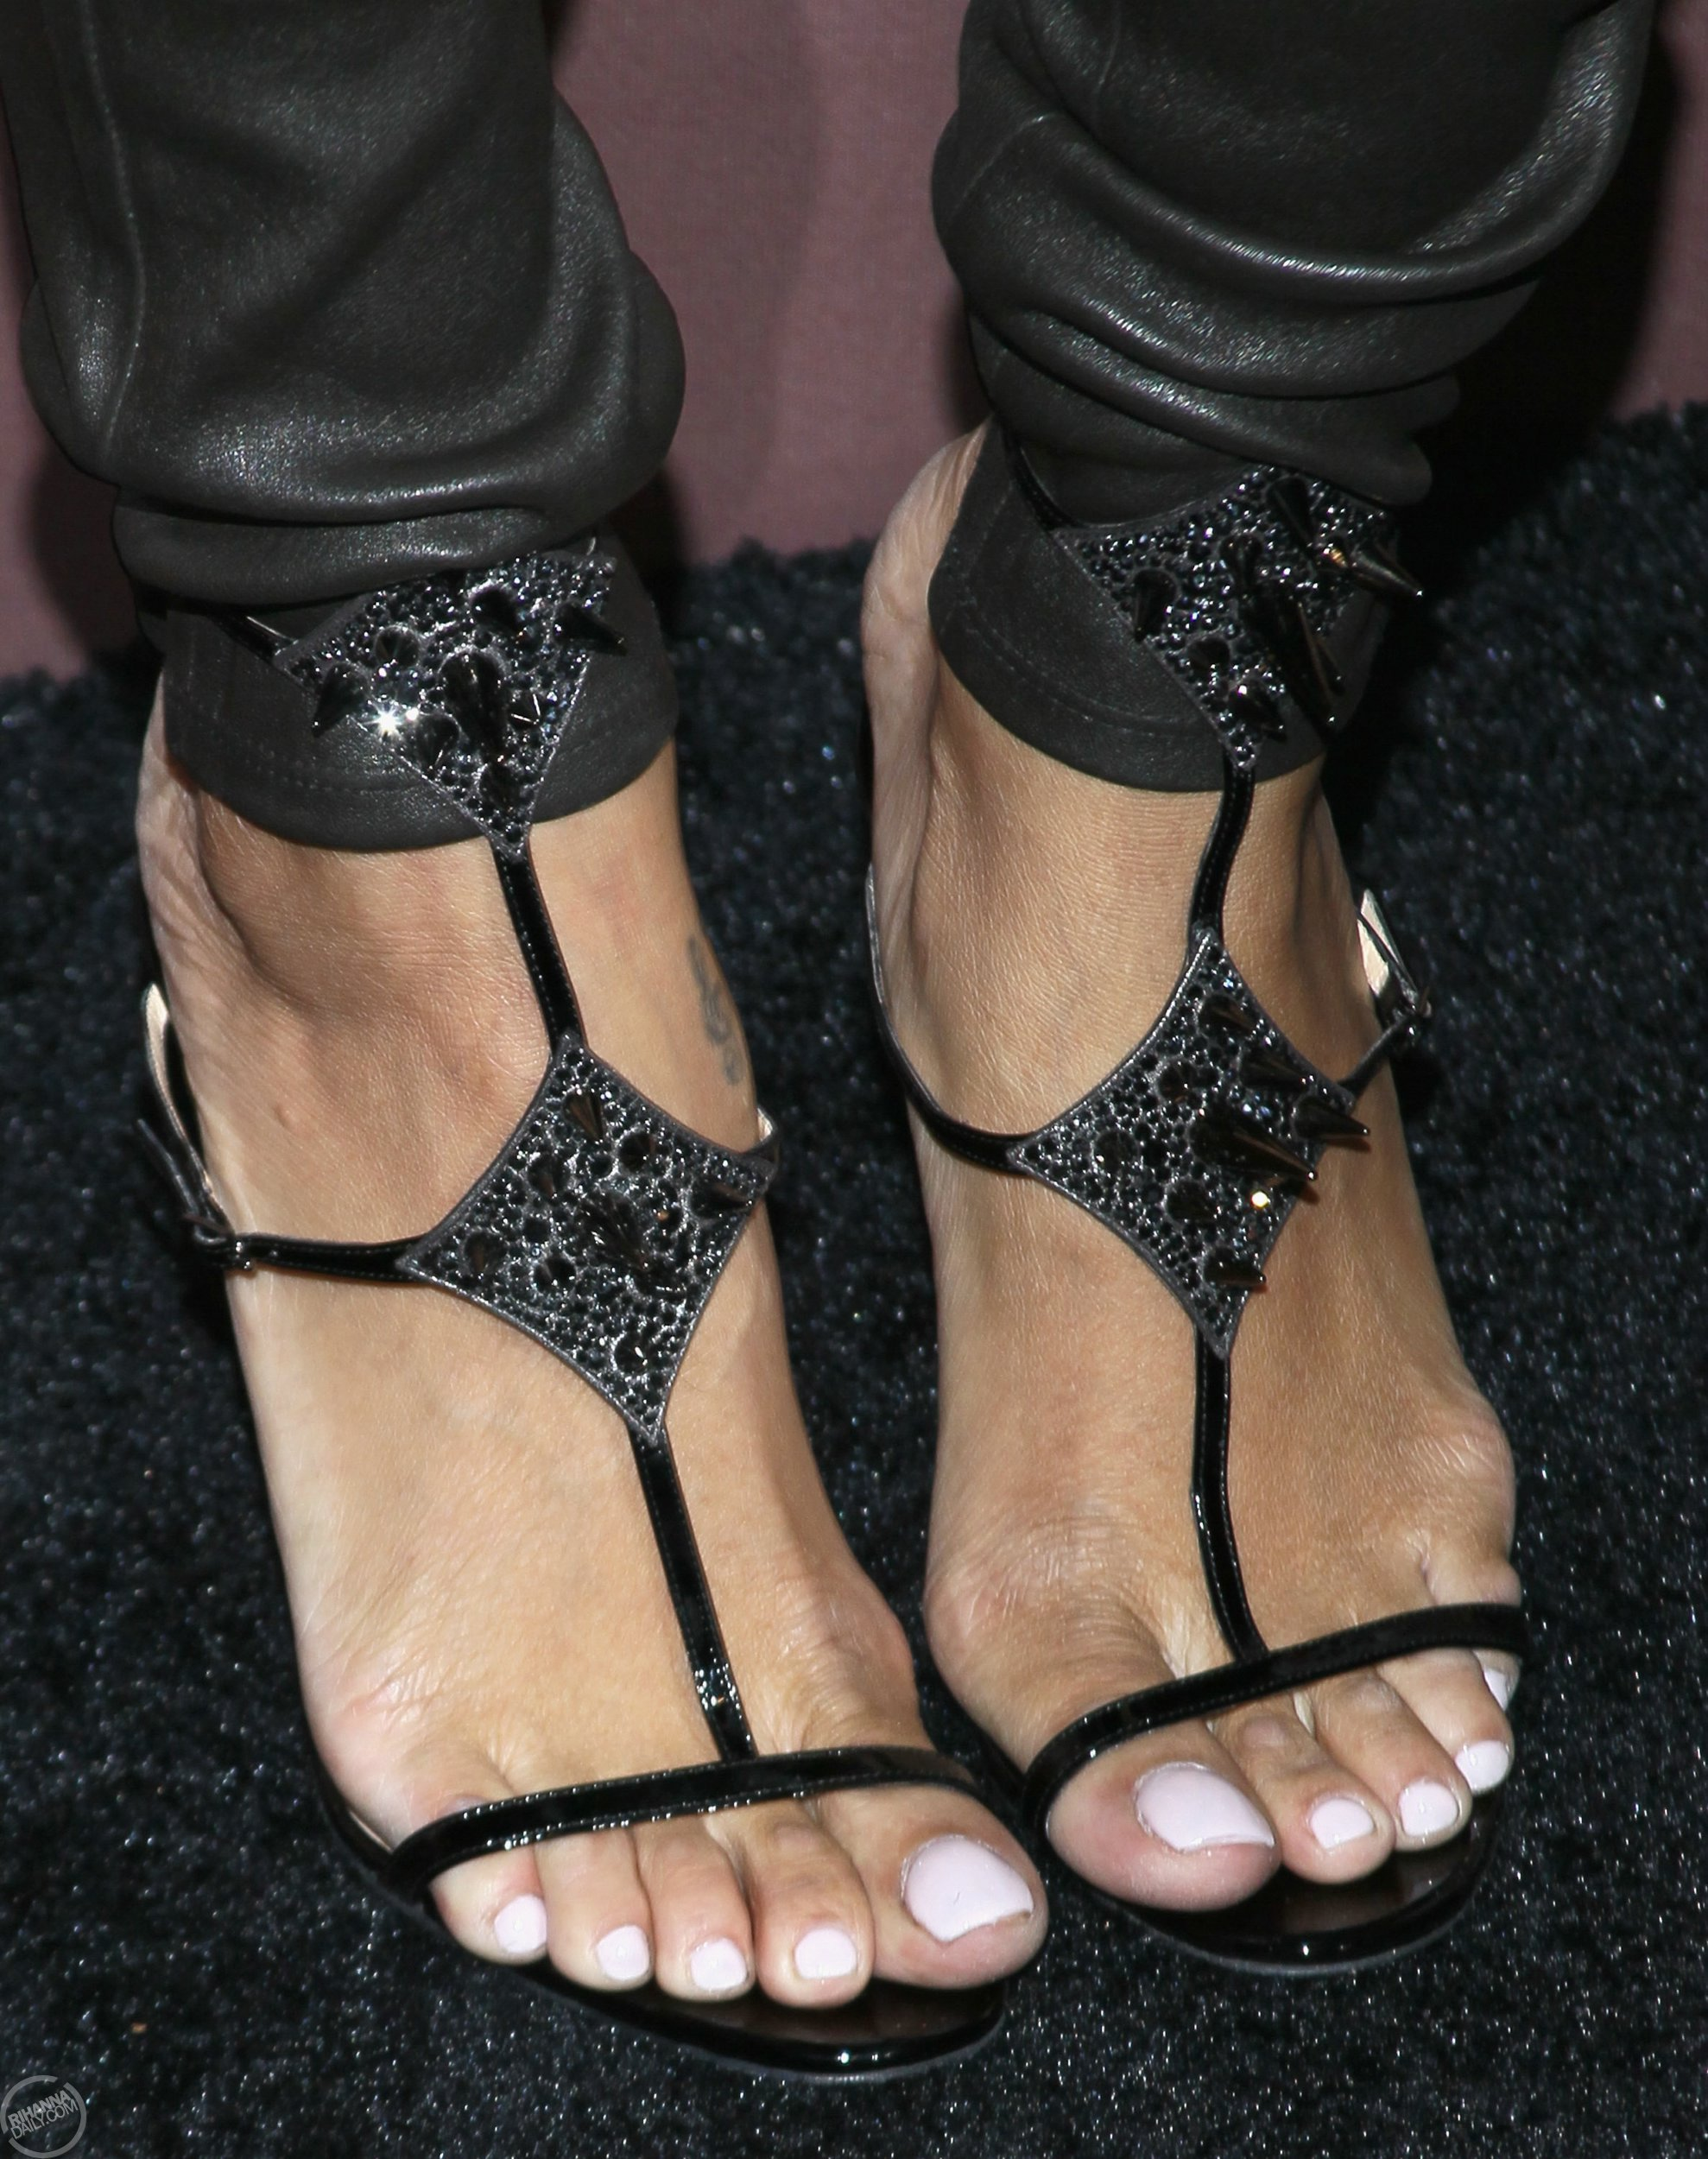 What Shoe Size Is Rihanna